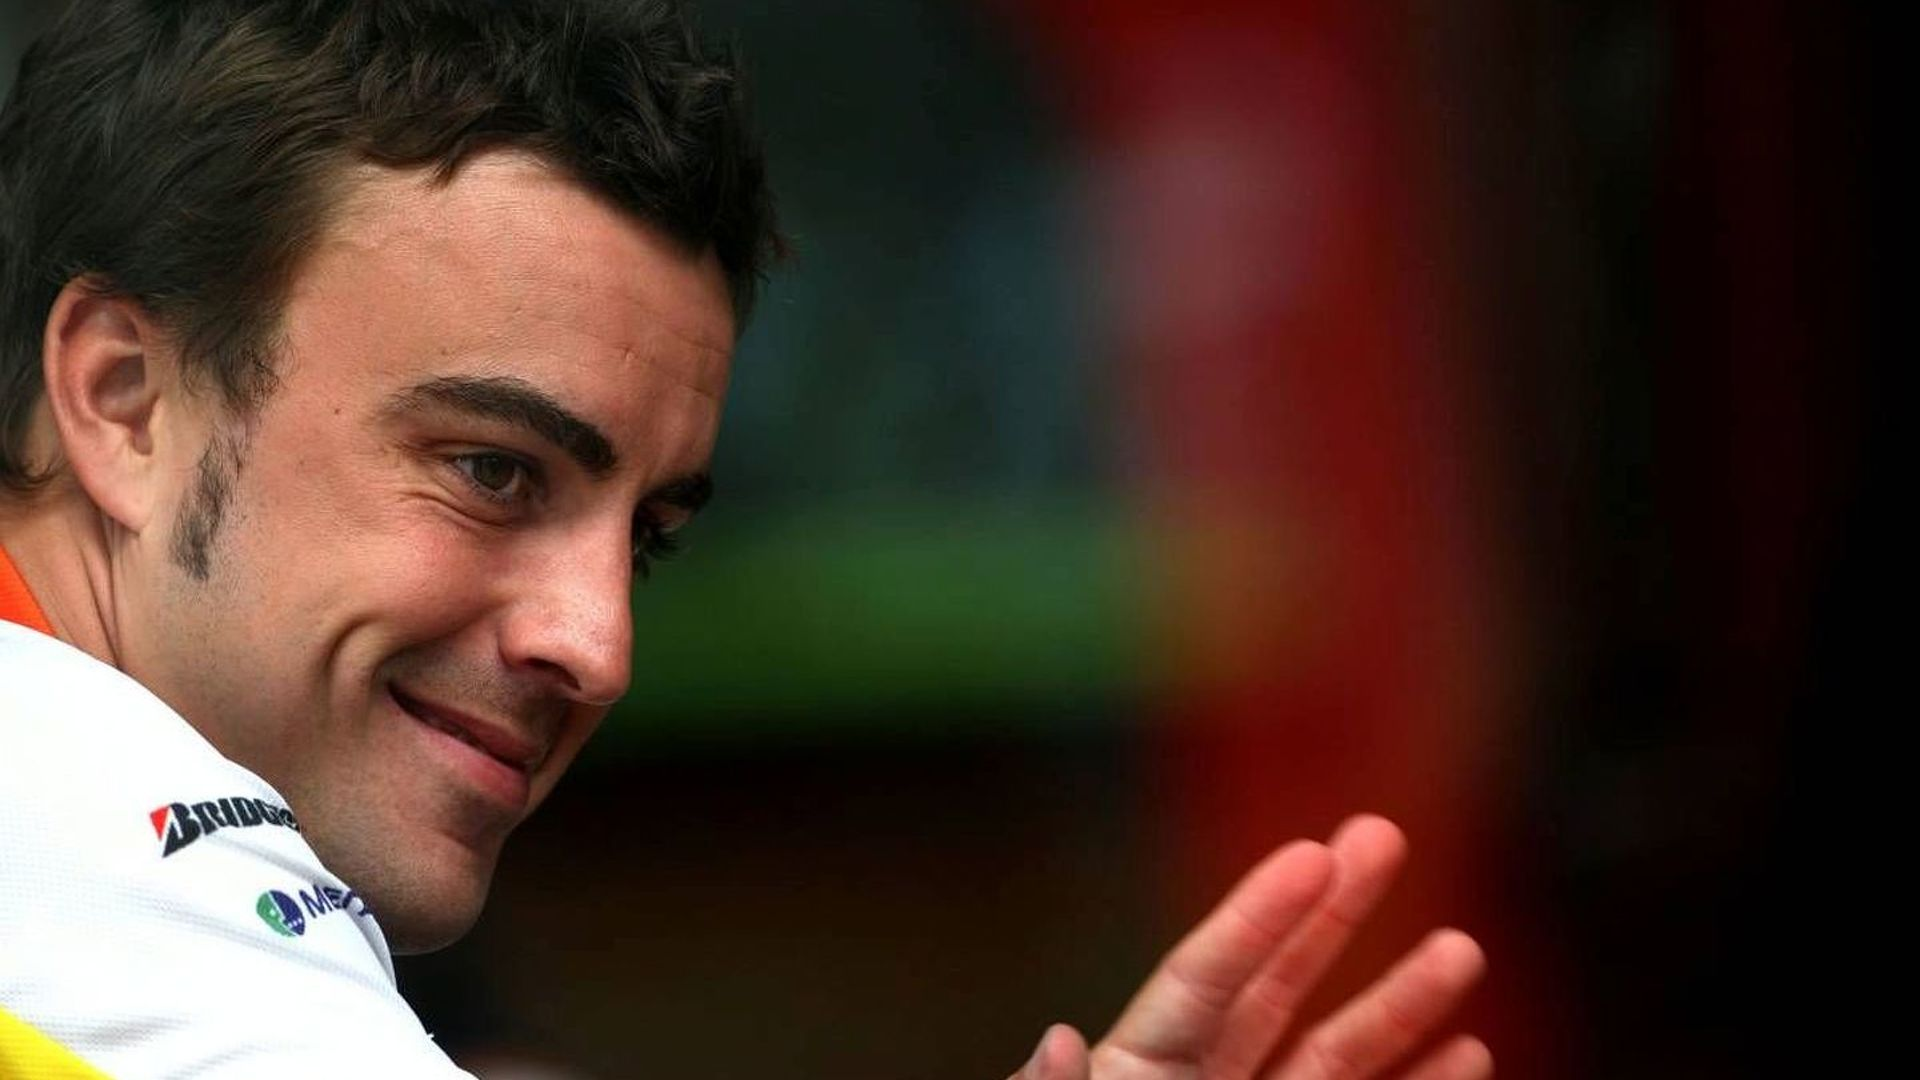 Alonso grins at Ferrari rumours at Spa